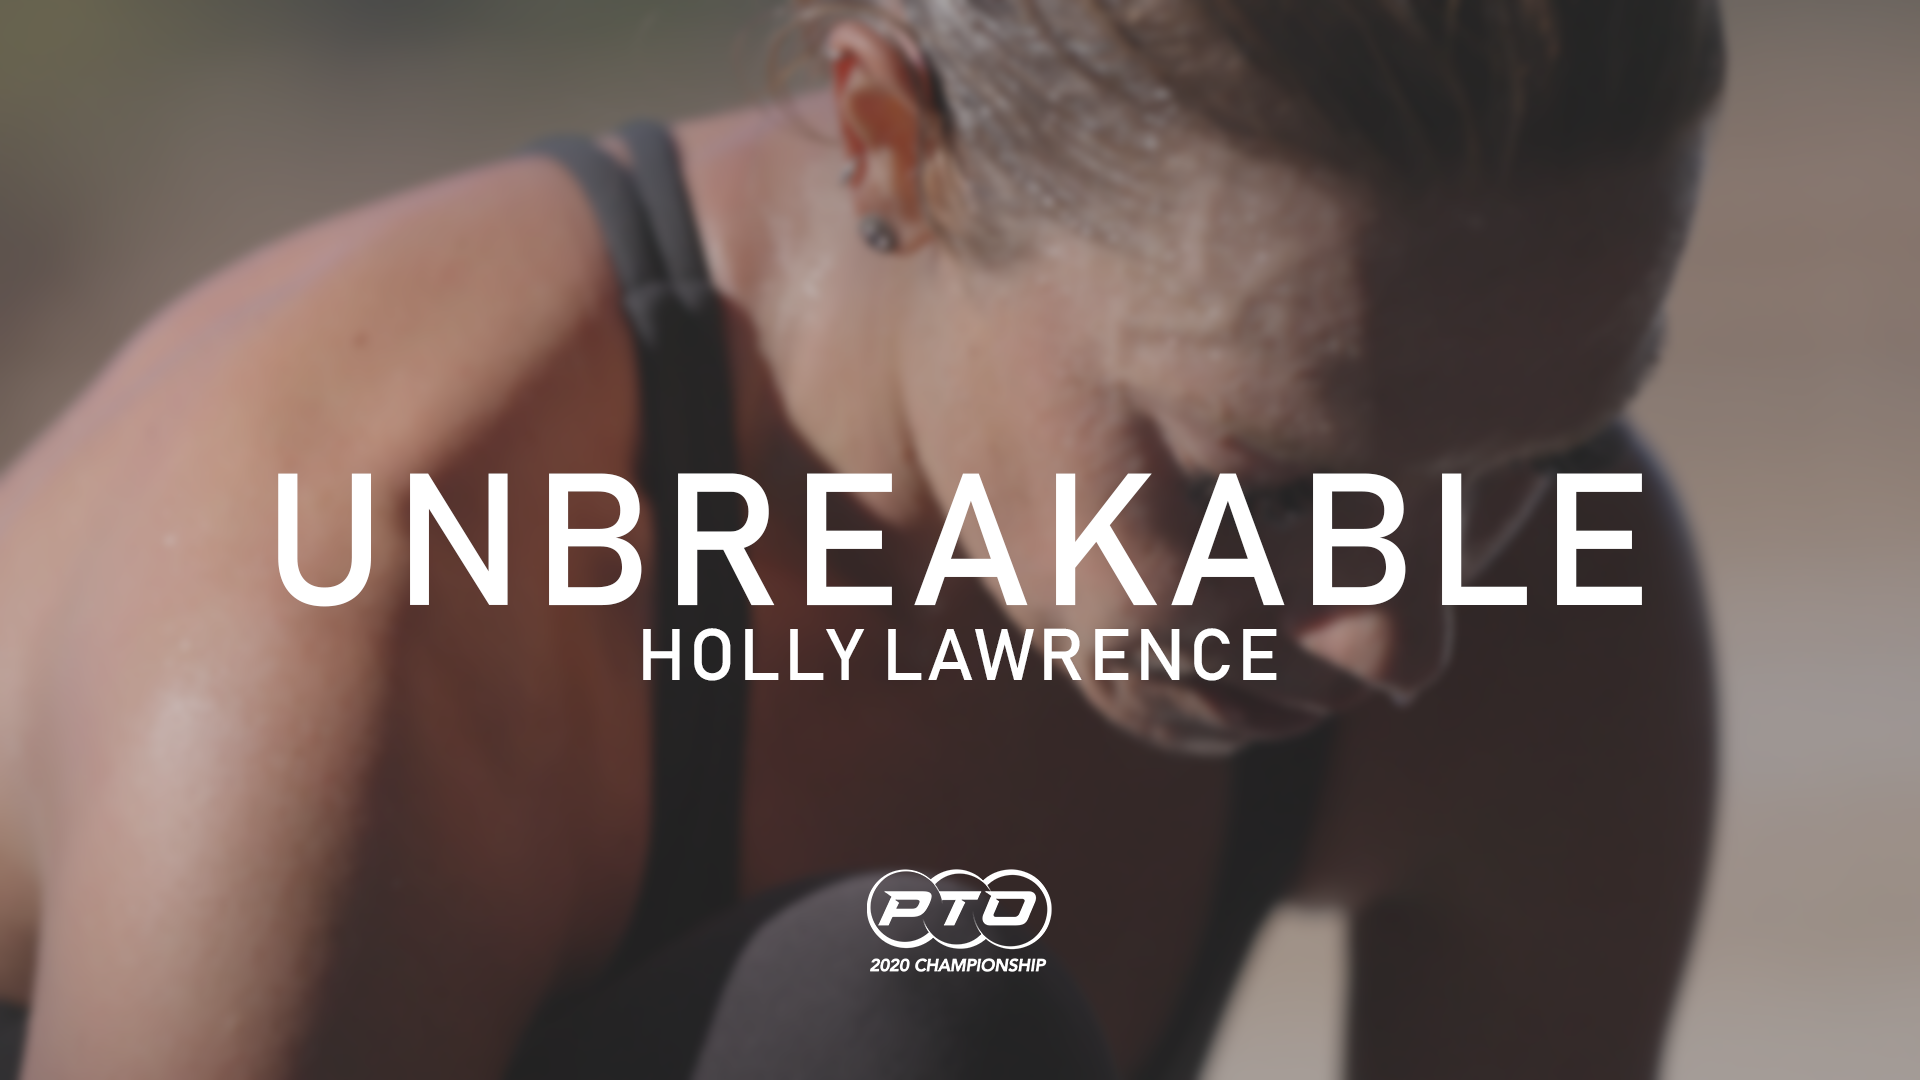 Unbreakable || Holly Lawrence